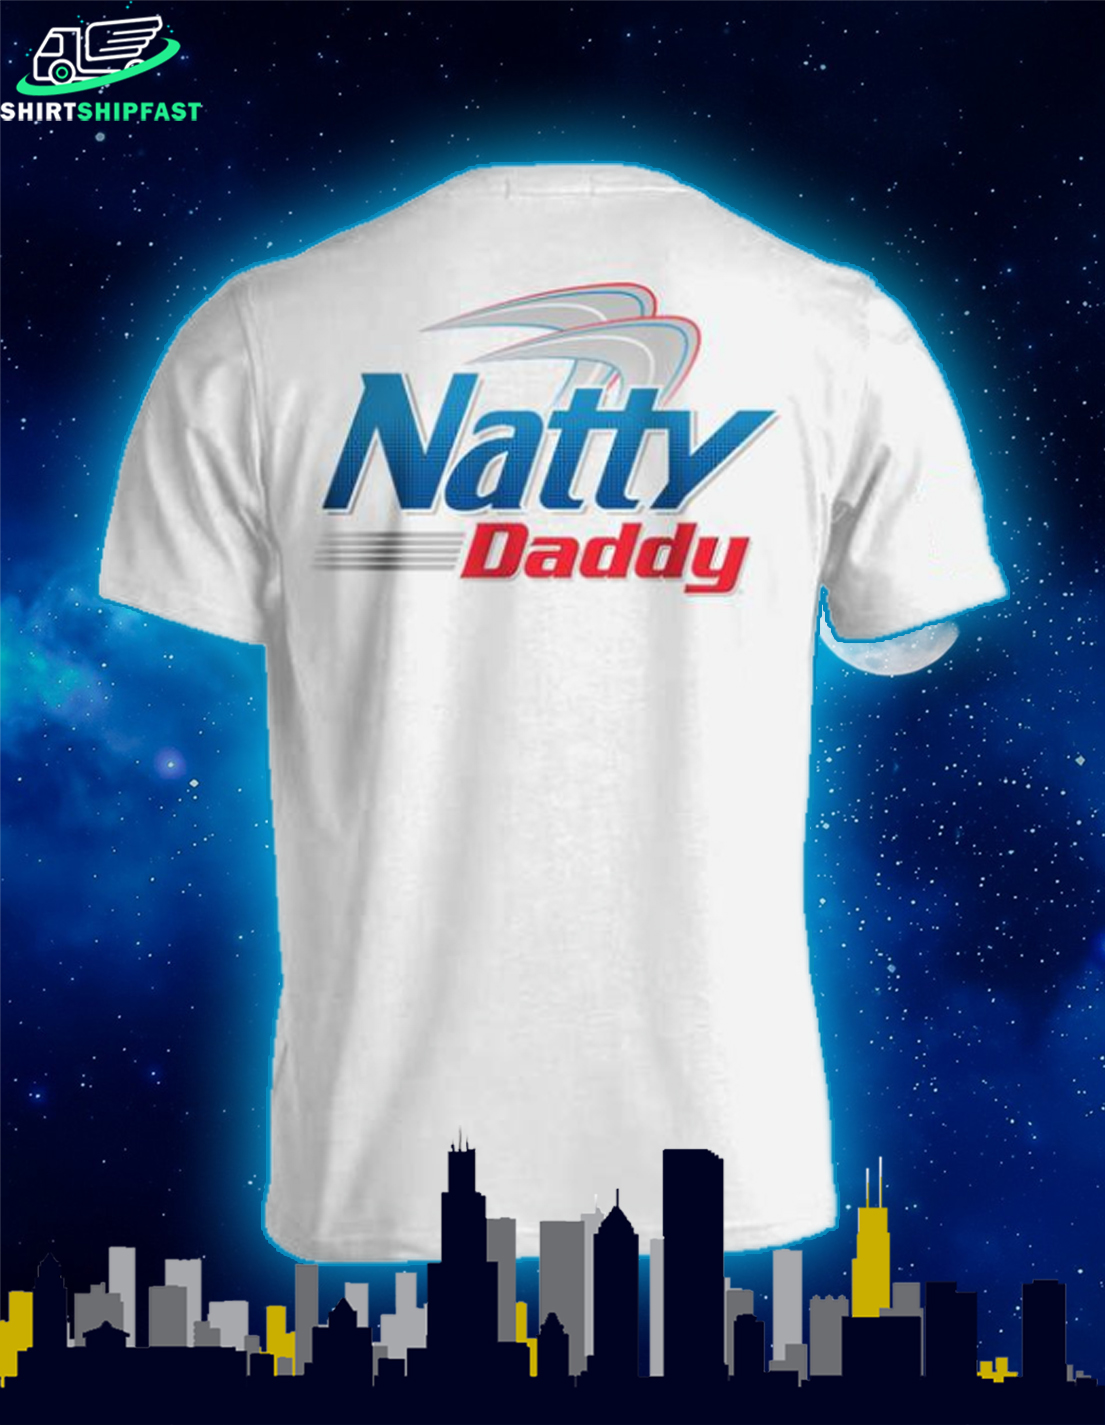 Natural light beer Natty daddy shirt - Picture 1